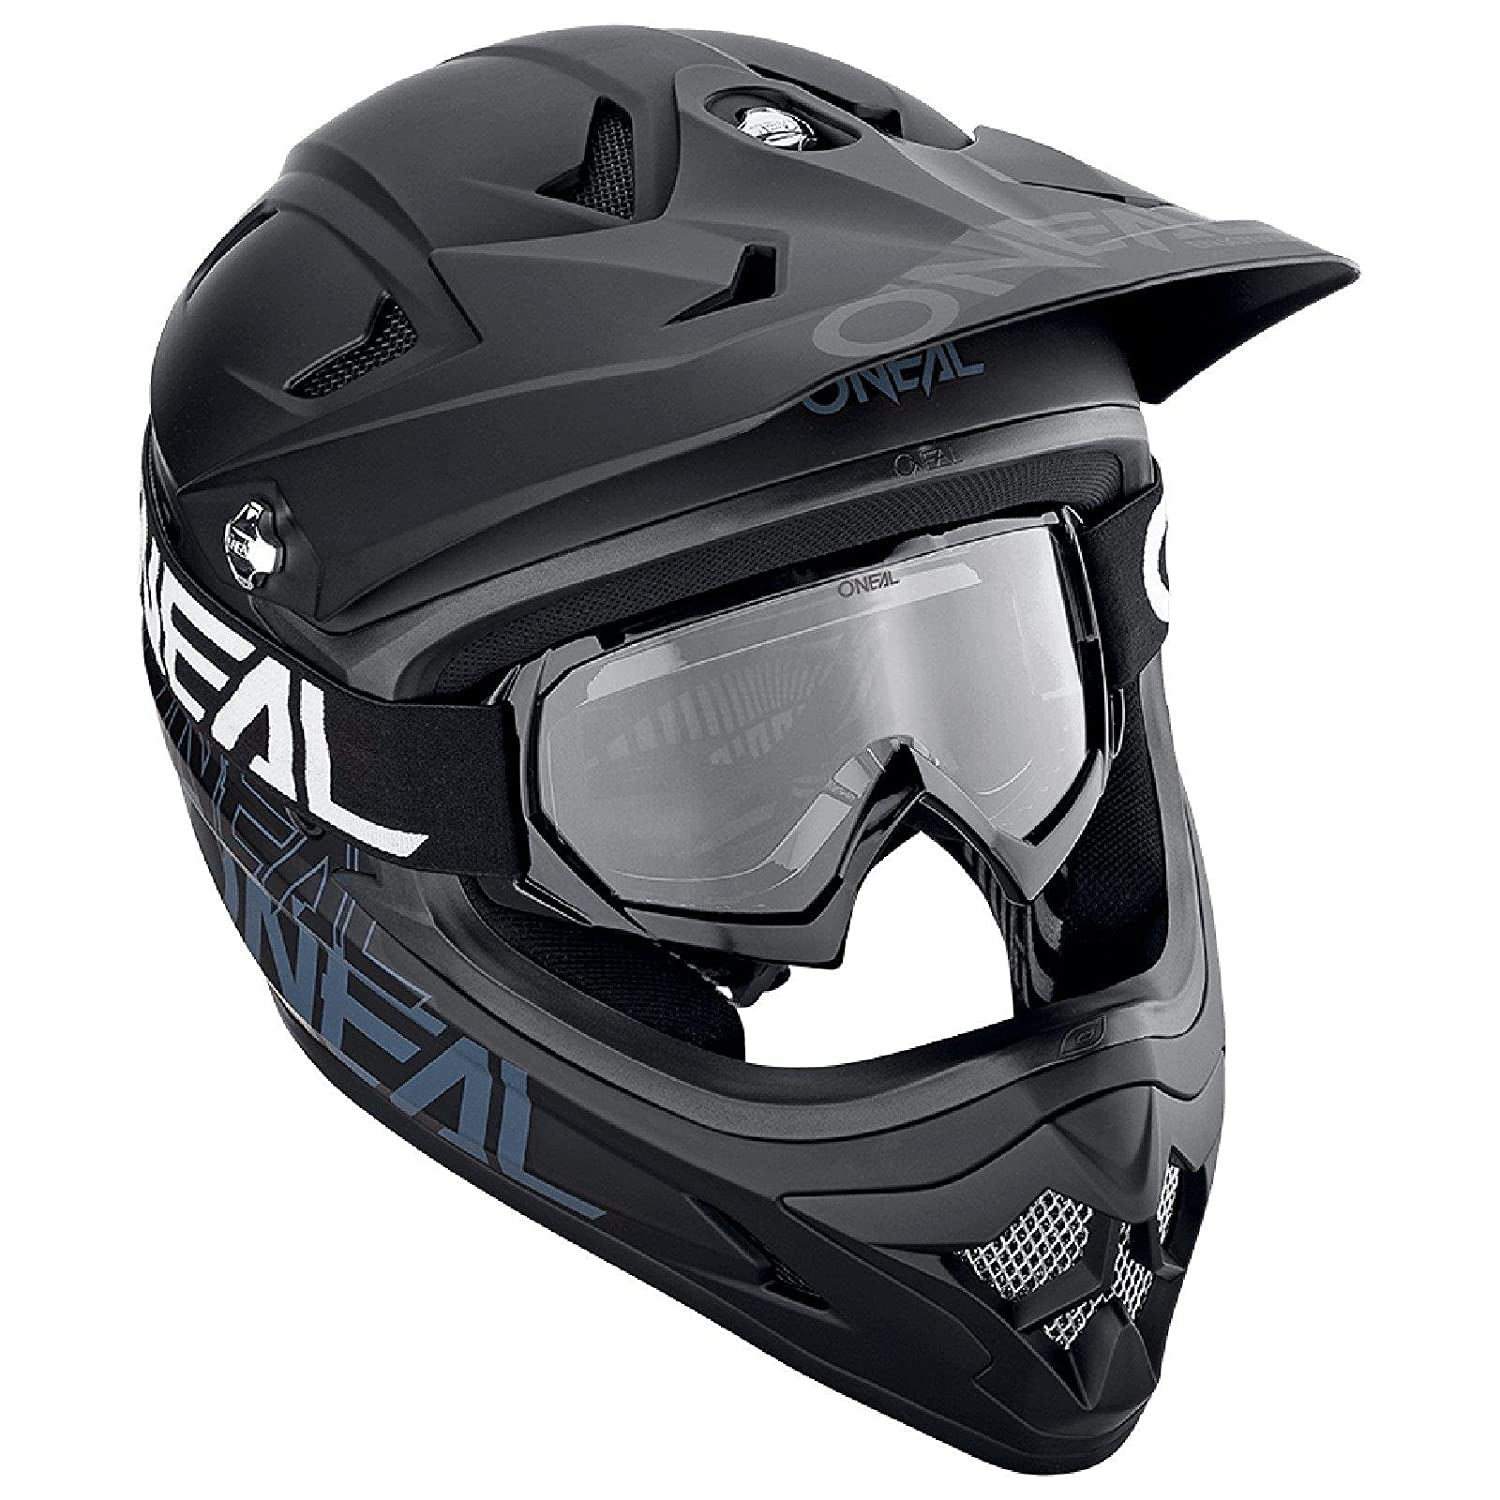 Oneal B-10 Solid Youth Motocross Goggles